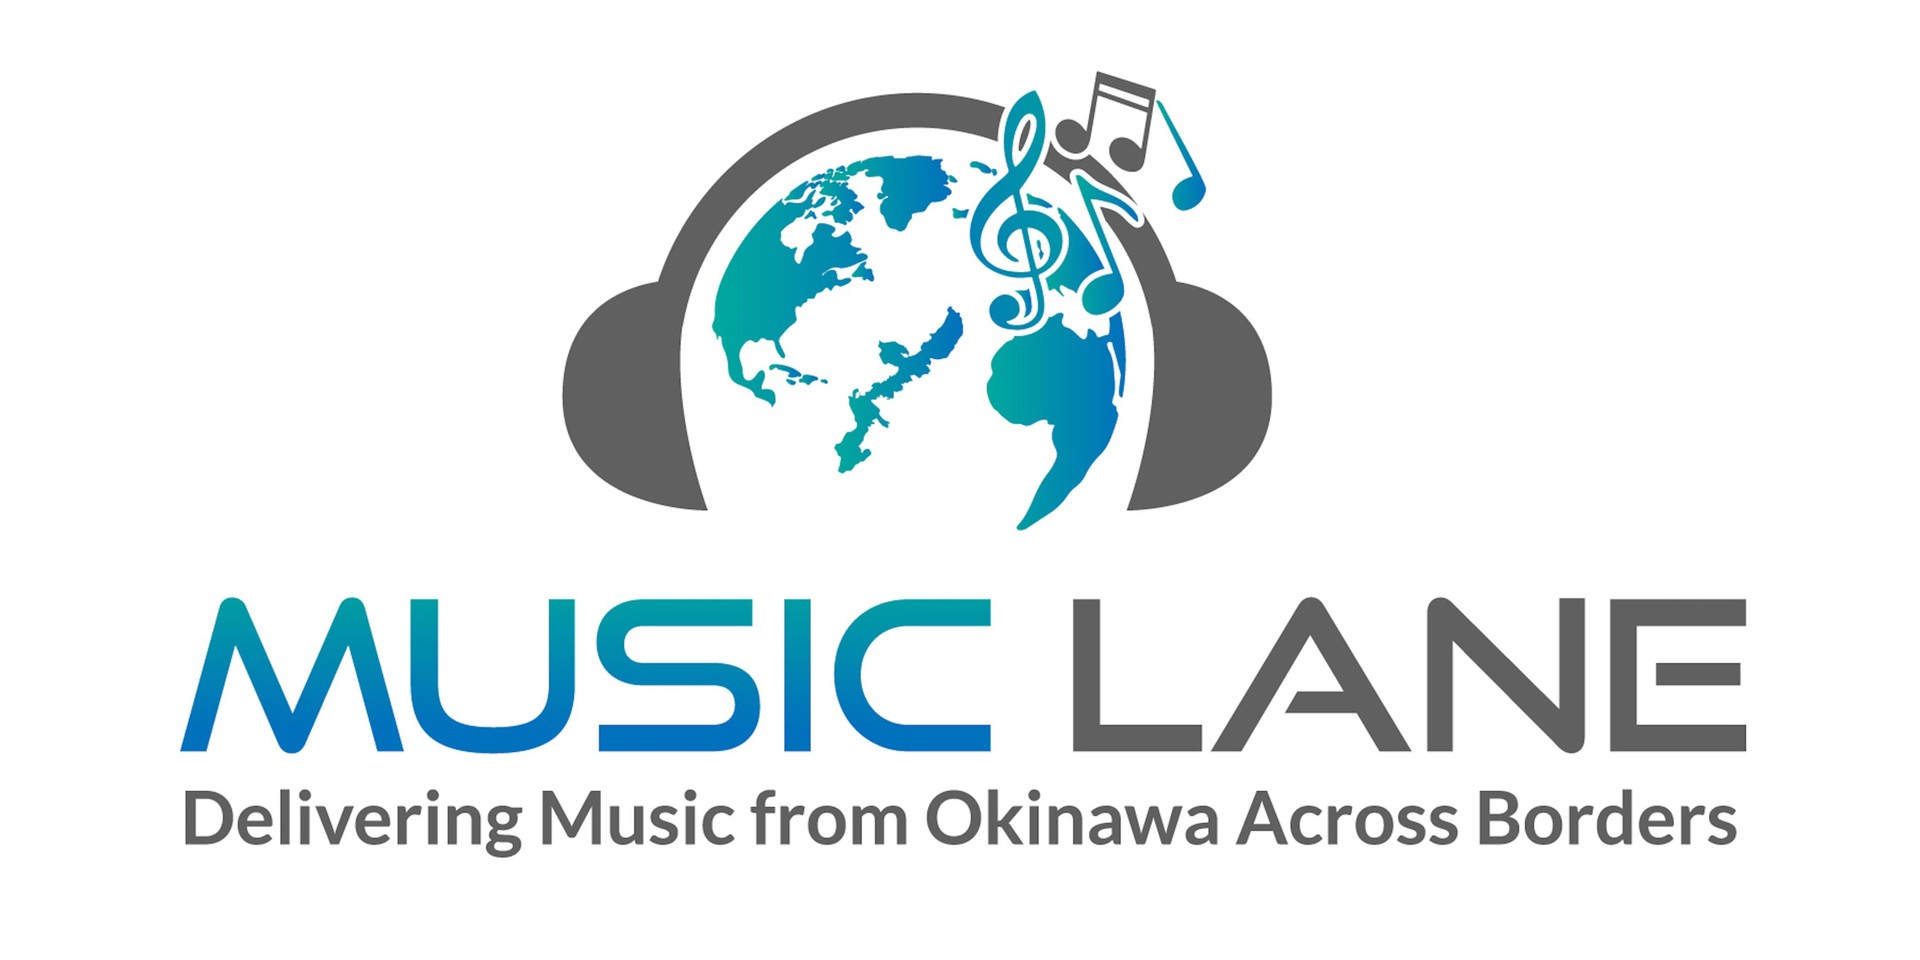 Music Lane Festival Okinawa 2021 postponed to February